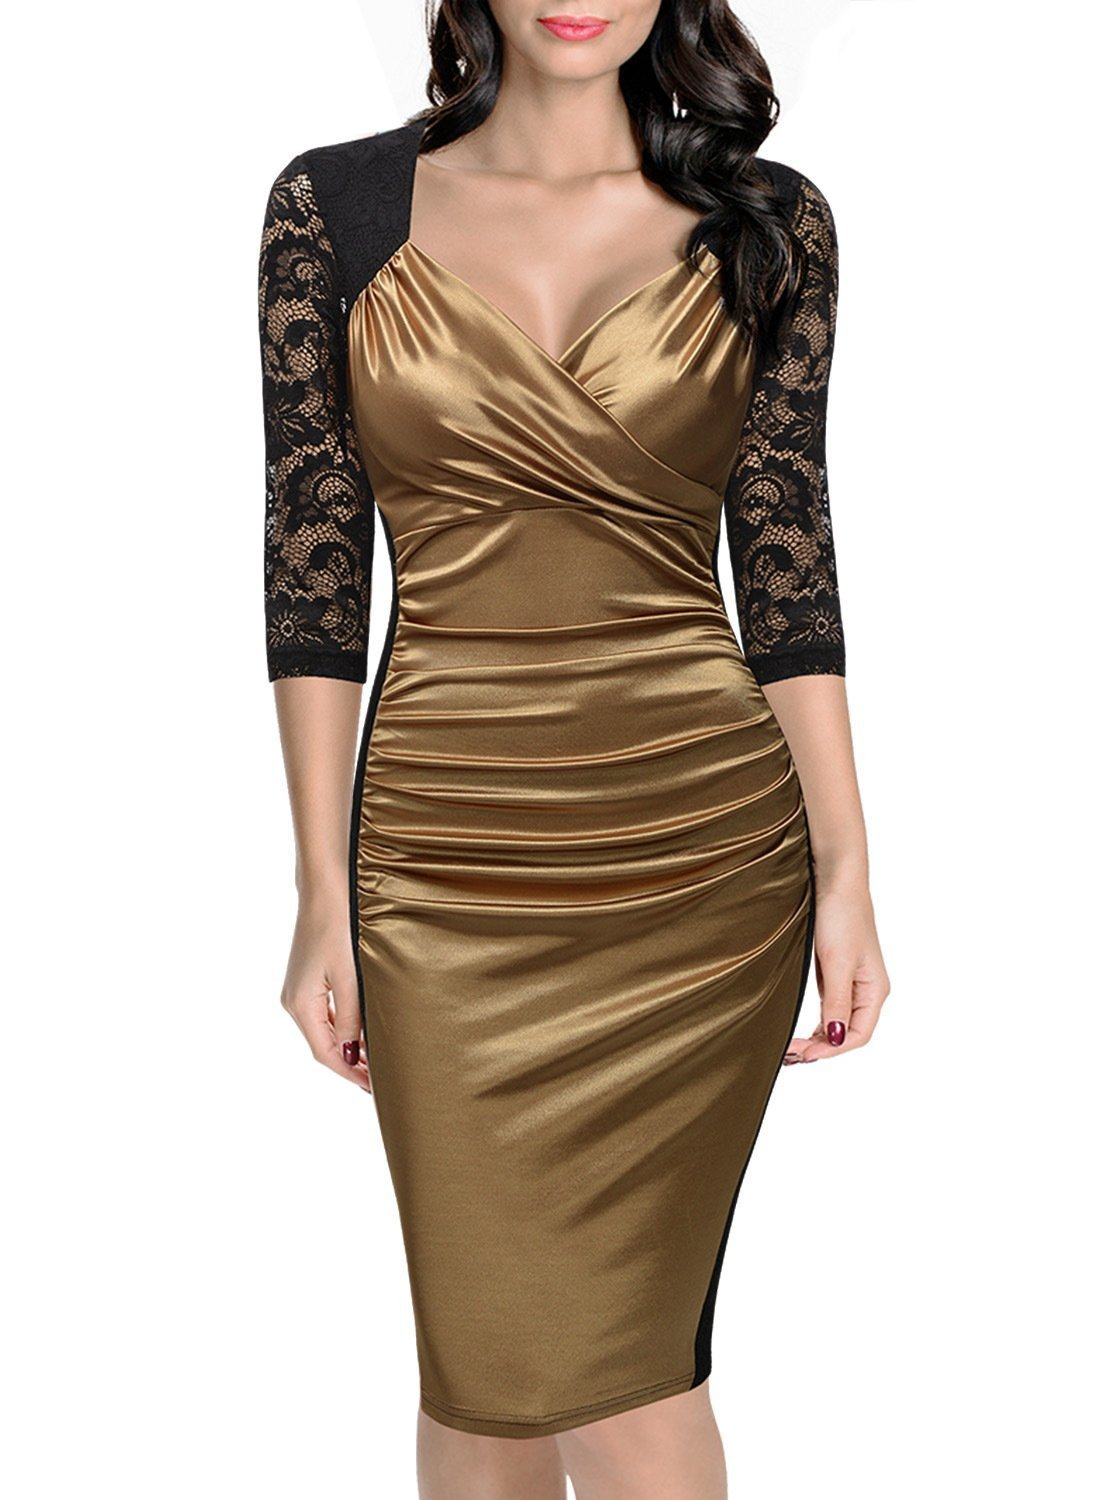 b36e9f56dc45 US$ 11.3 - Elegant V-Neck Ruched Midi Dress with Lace Sleeves 22951-2 -  www.global-lover.com